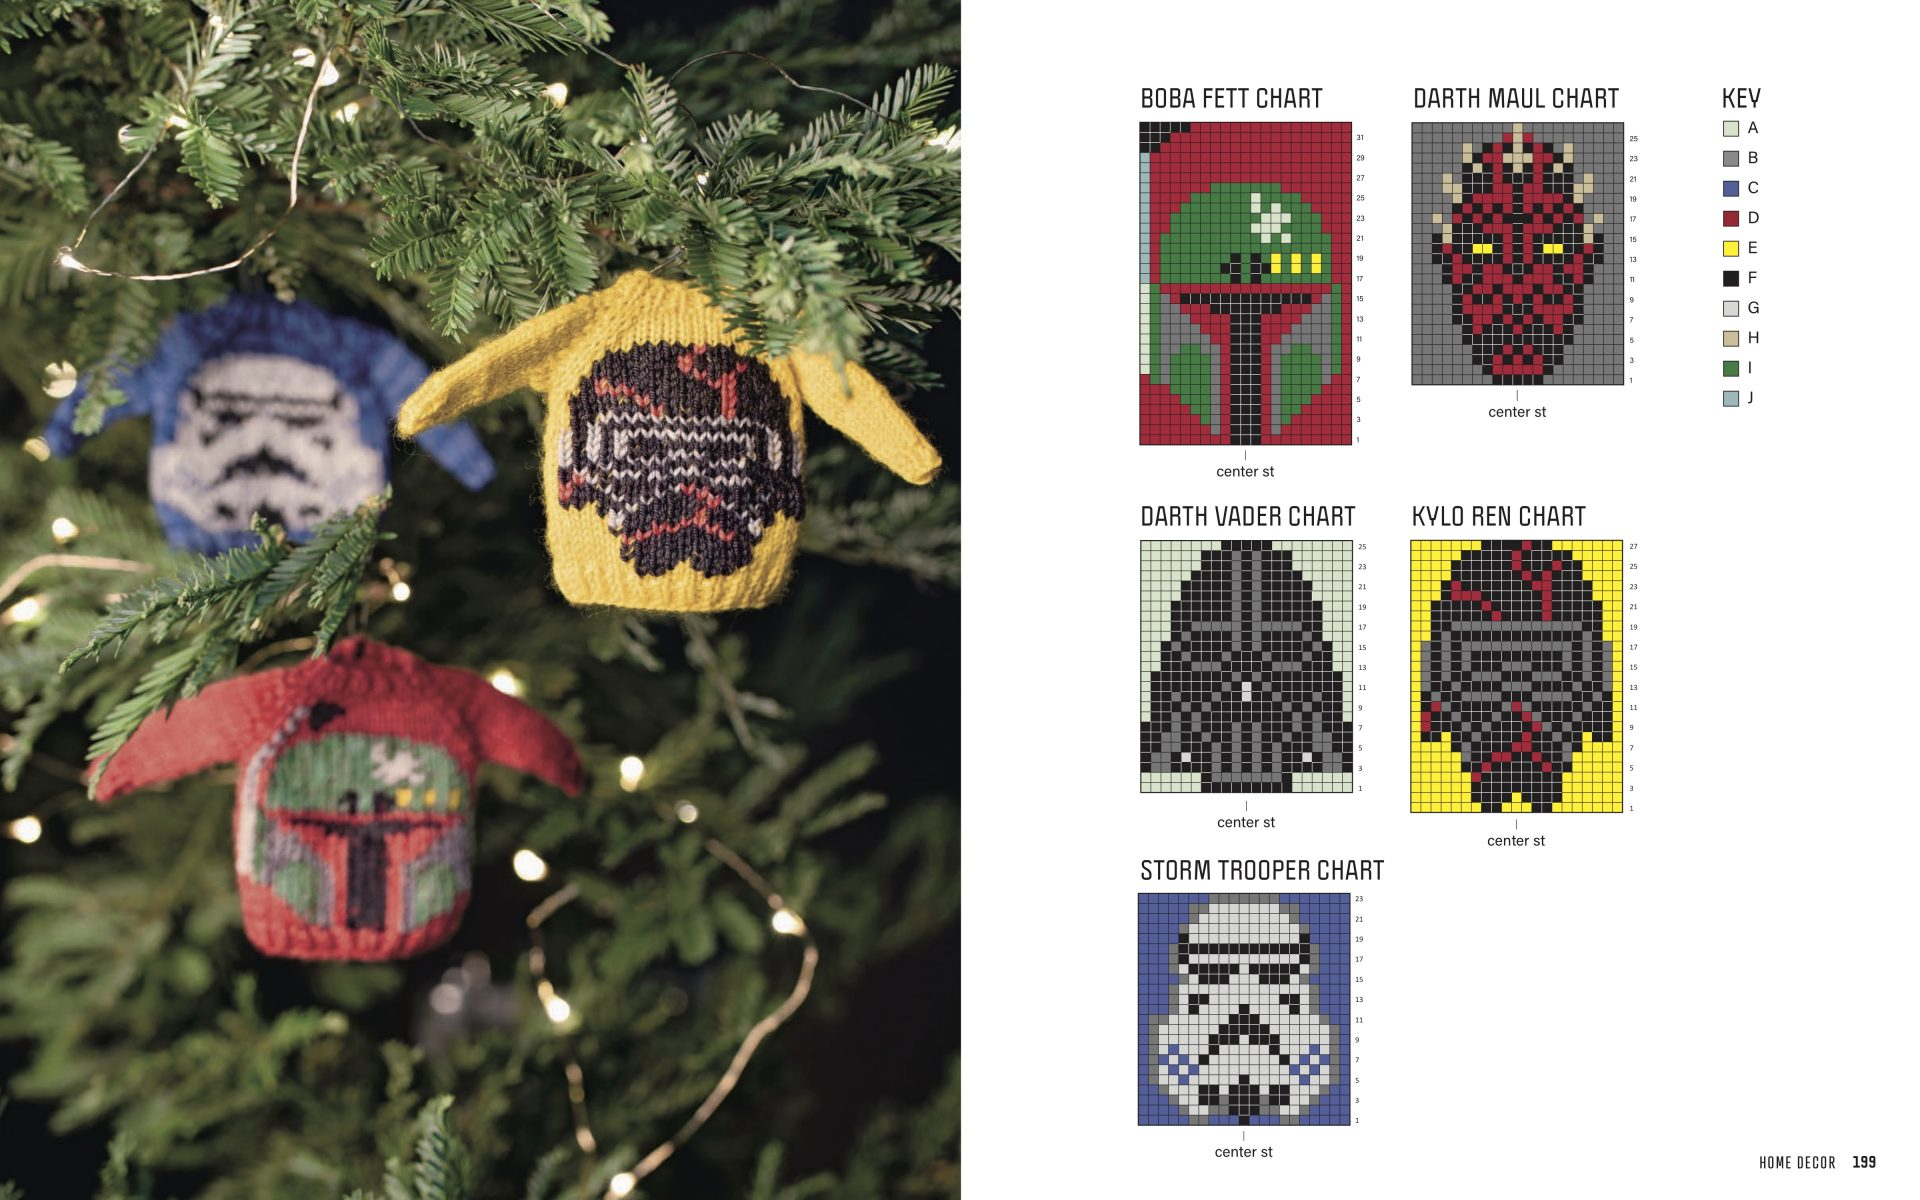 Star Wars sweater ornament knitting pattern and instructions